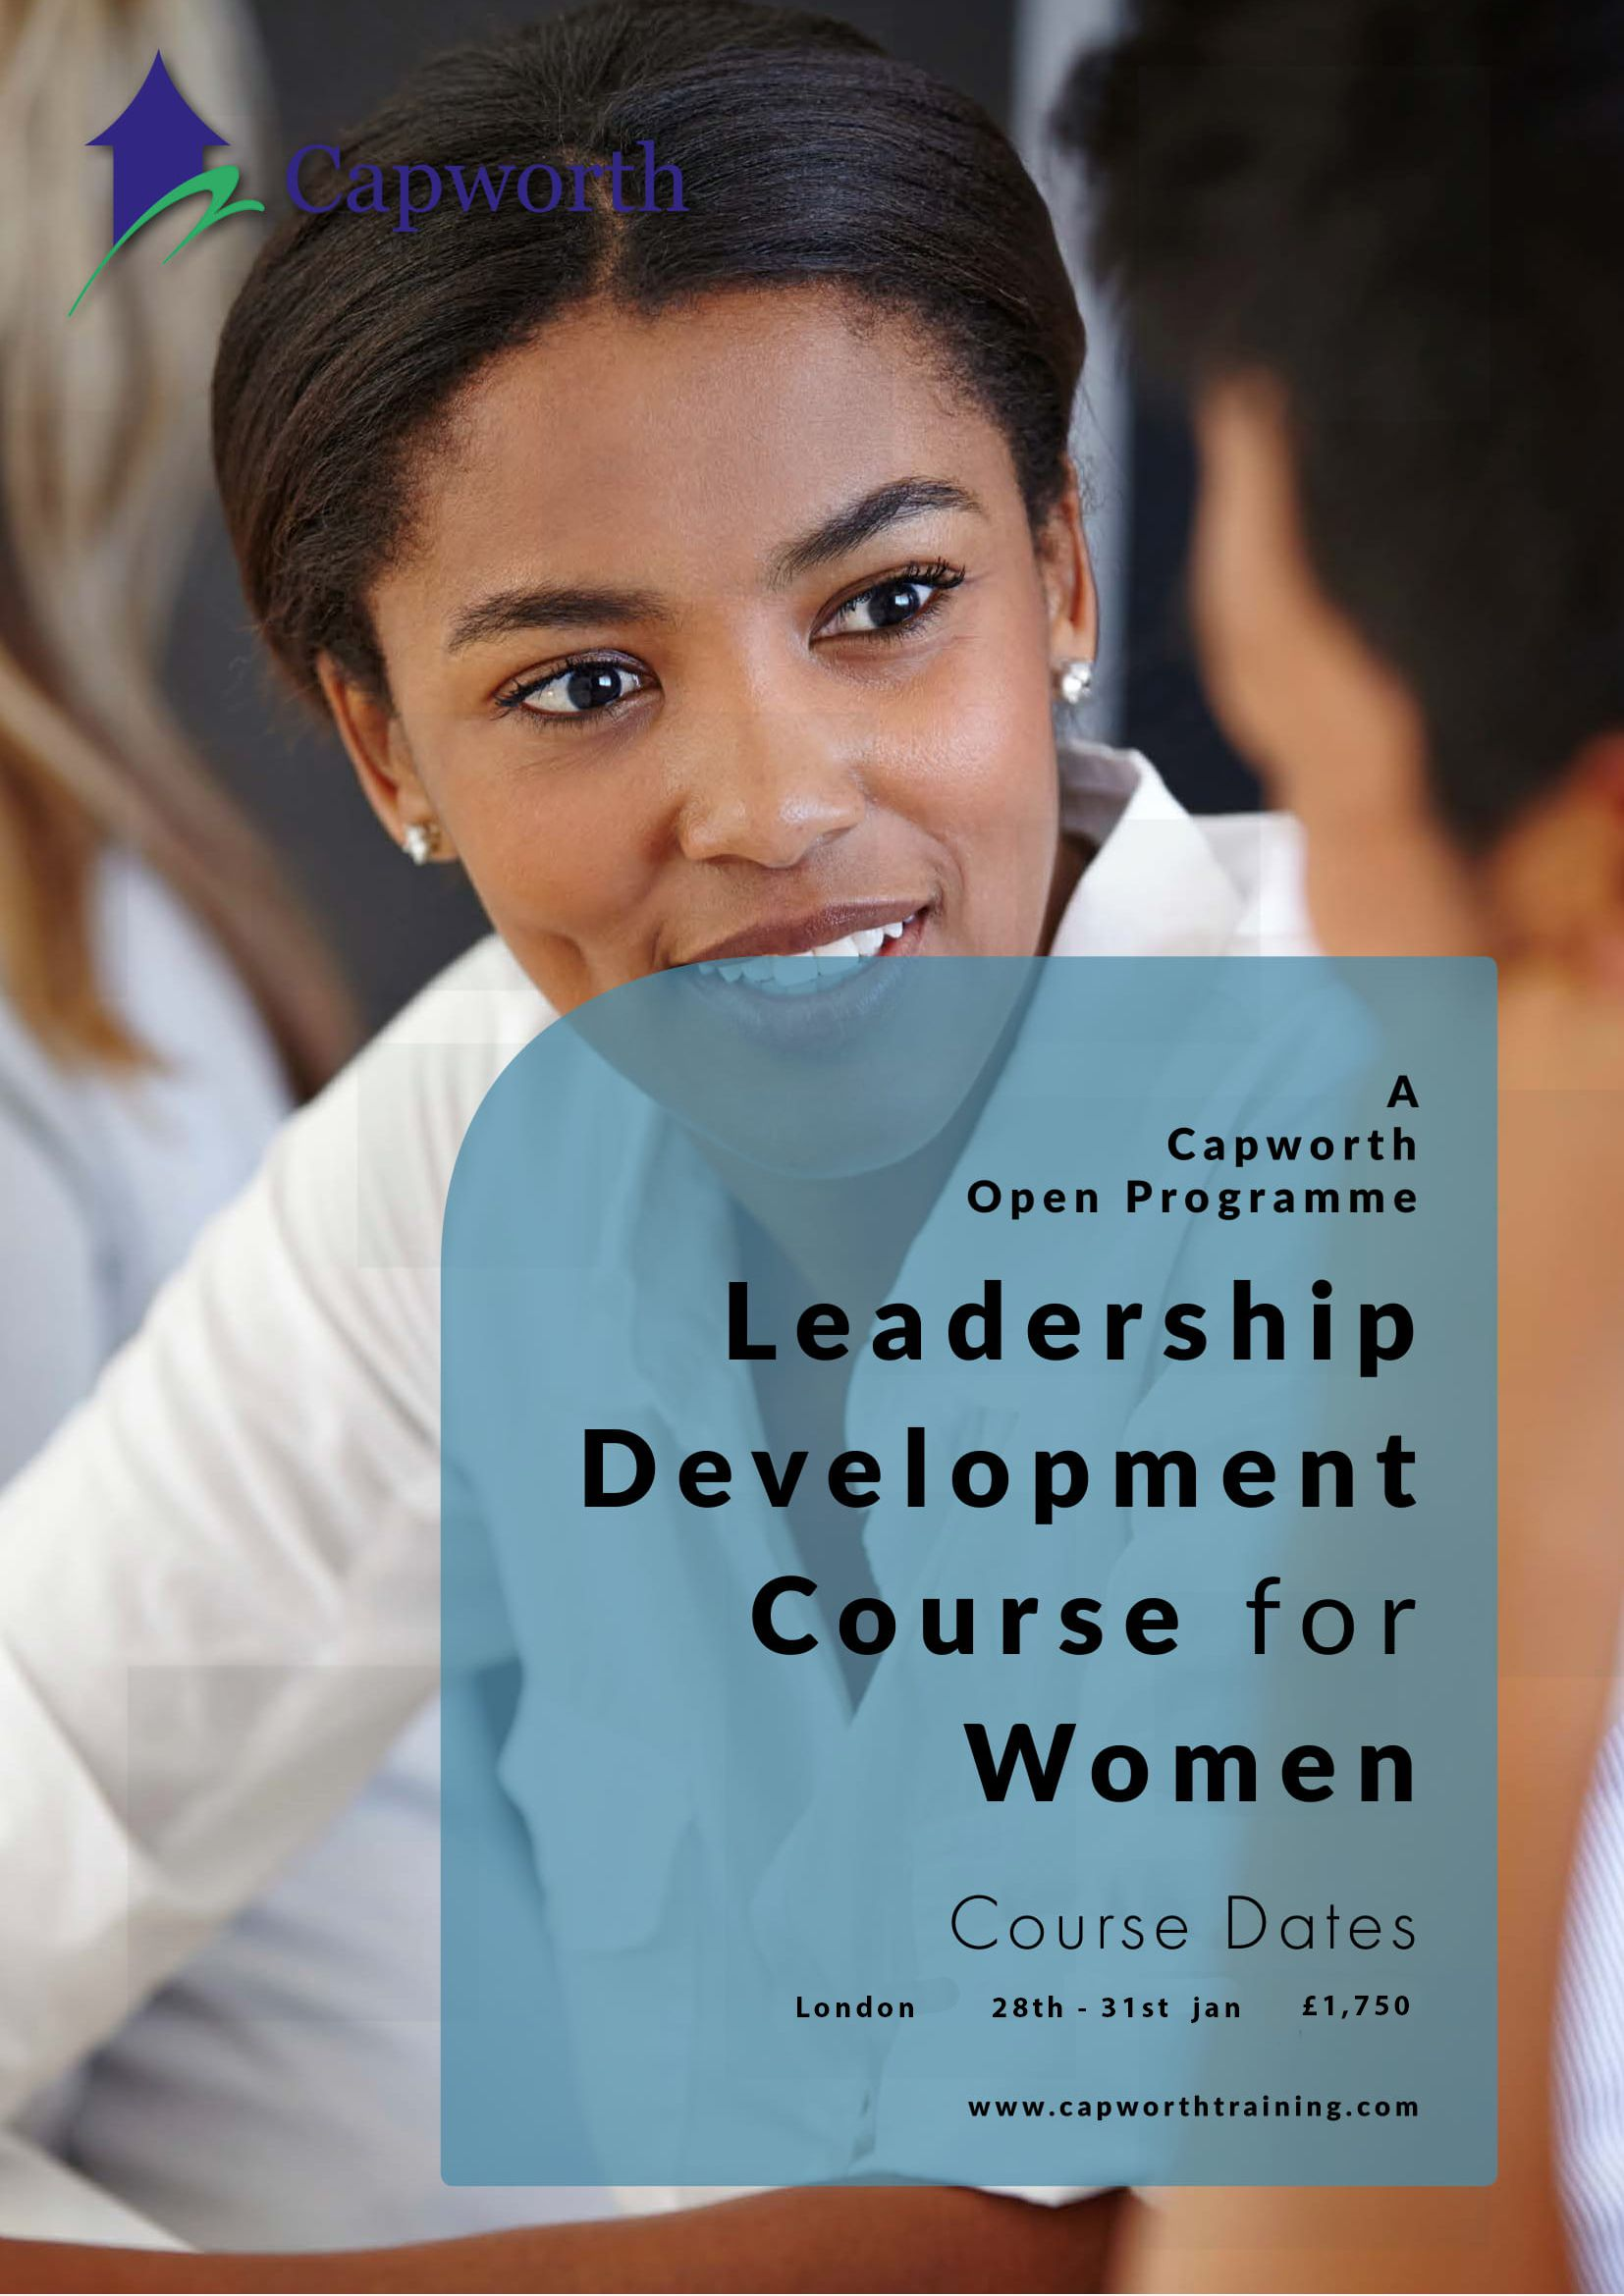 Leadership Development Course for Women - London  - Jan 2019 - Open Course _Page_1.jpg